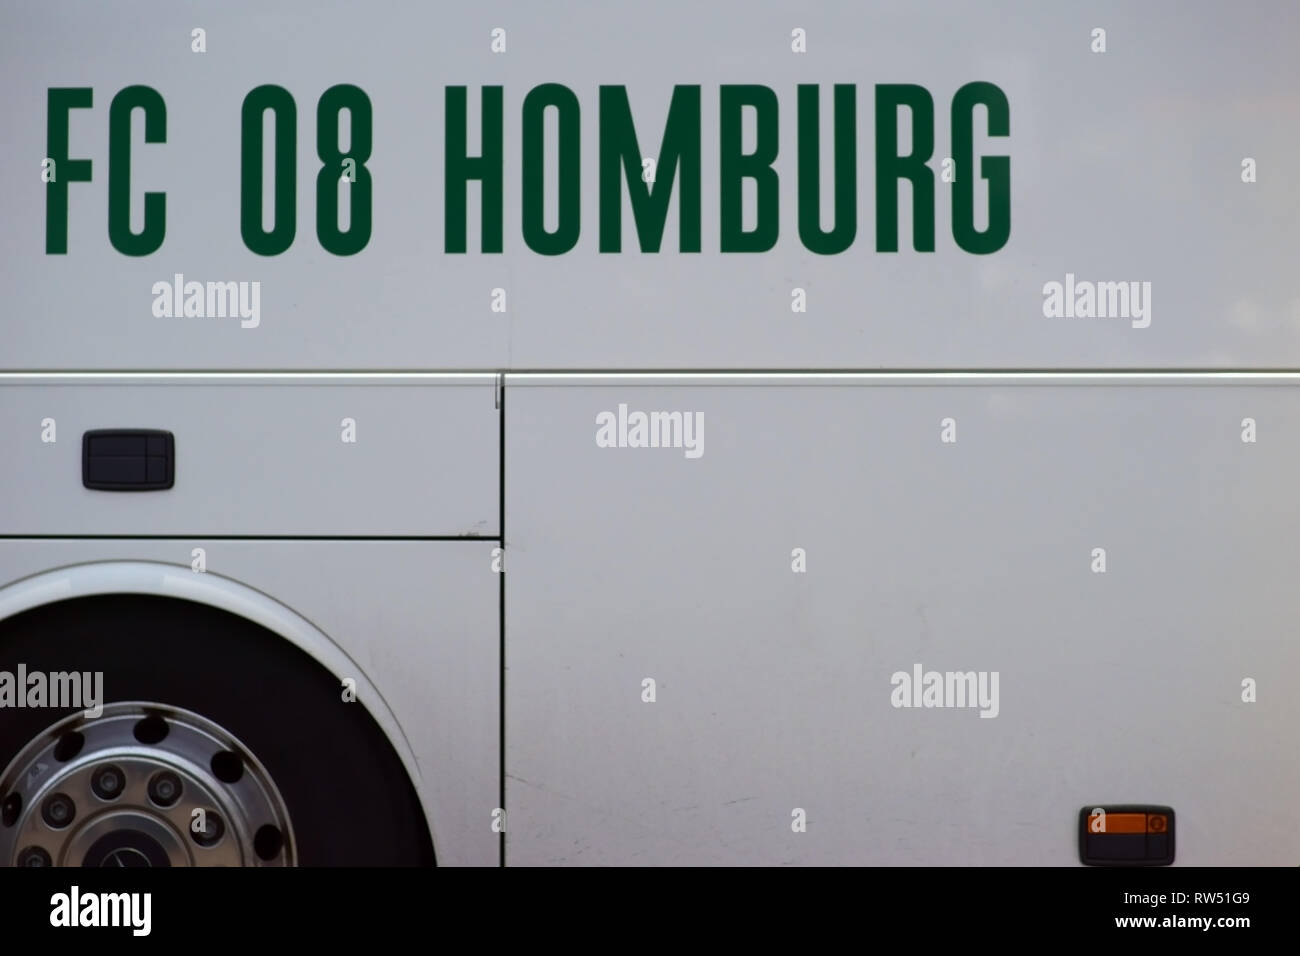 Mainz, Germany - March 01, 2019: The logo of the football club 1. FC 08 Homburg on the team bus to a game of Regional league on March 01, 2019 in Main - Stock Image